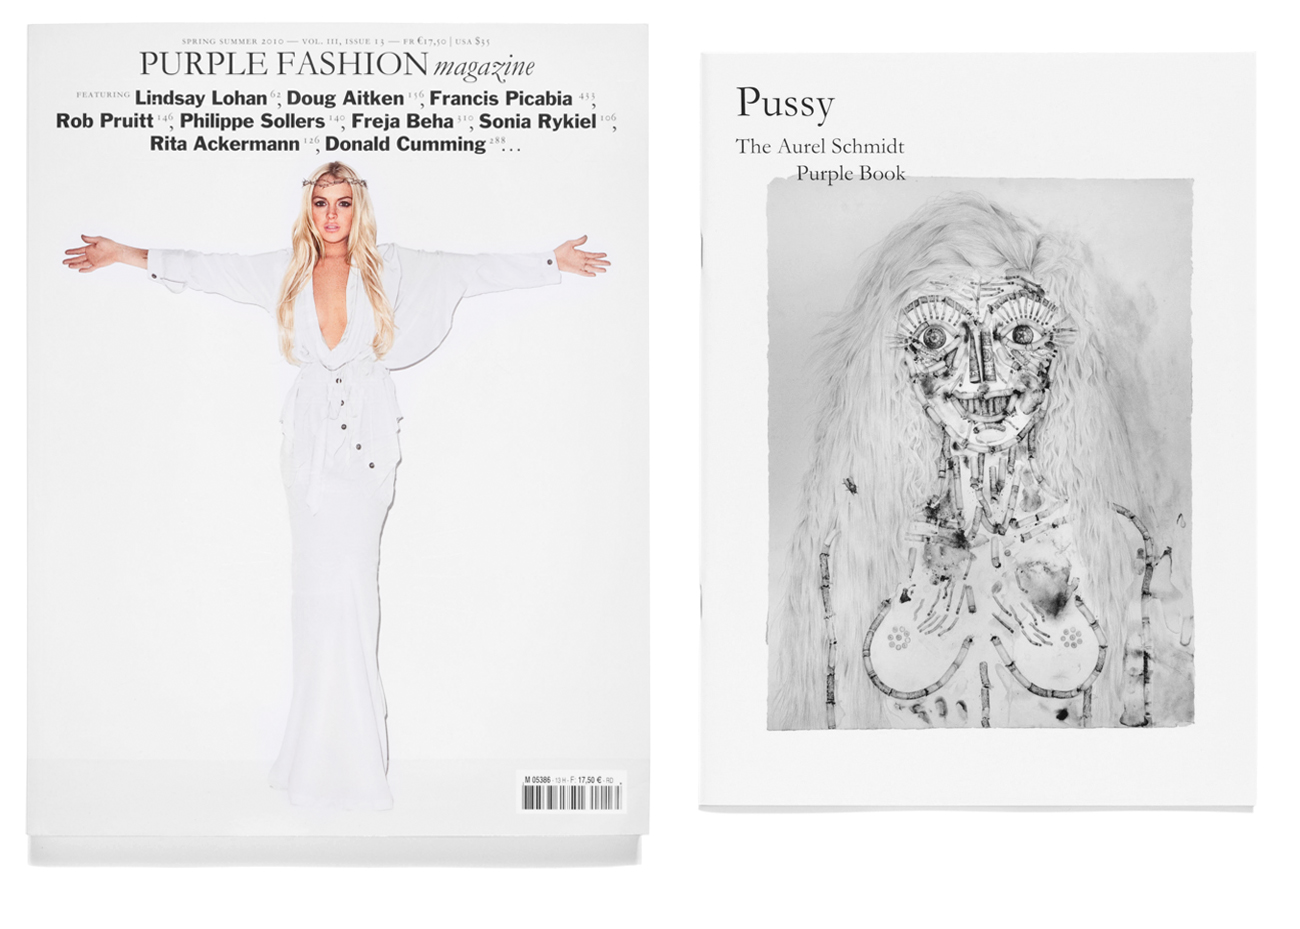 S/S 2010 issue 13